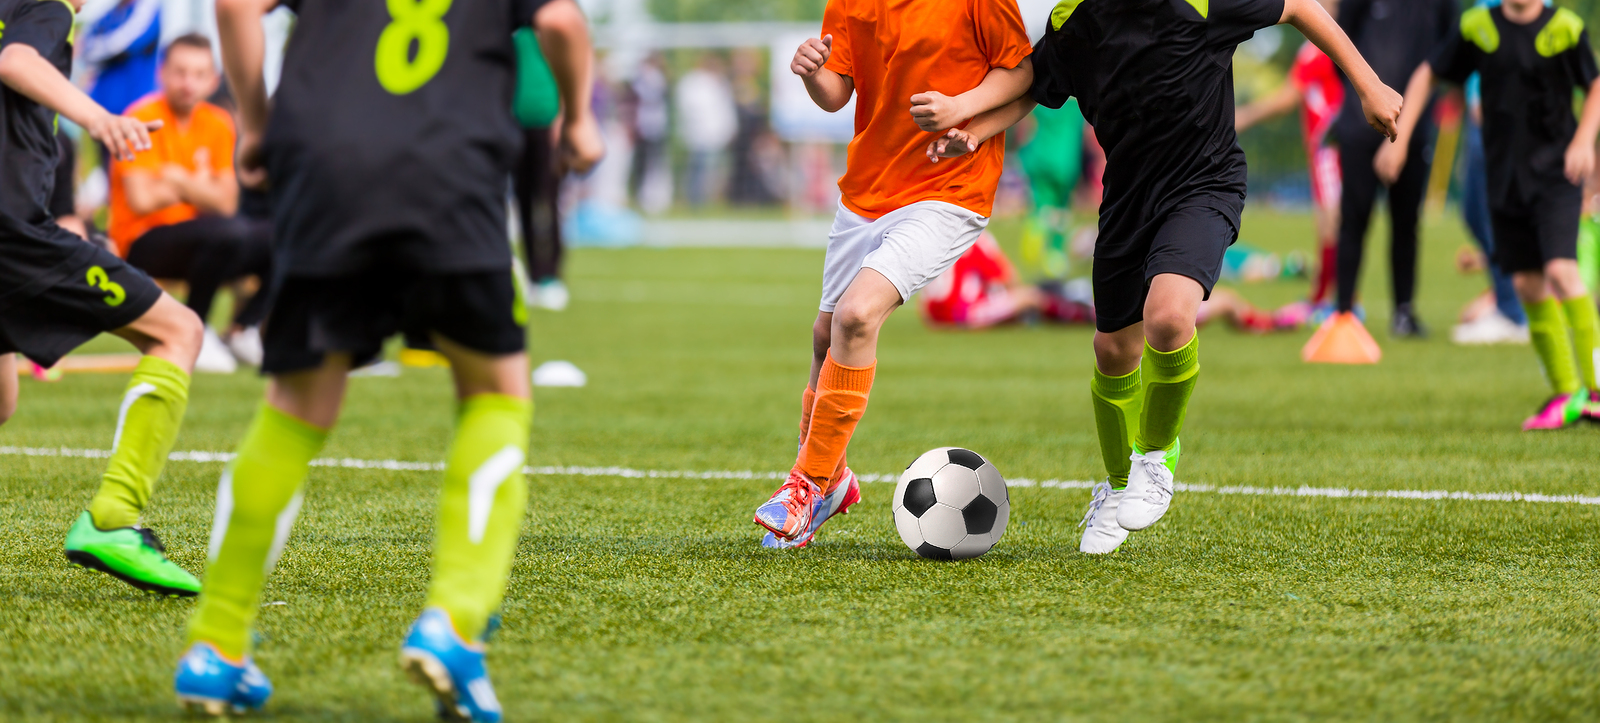 concussions and children playing football Sports-related concussions on the rise in kids examining sports-related concussions in children and adolescents he was told to stop playing football for a.